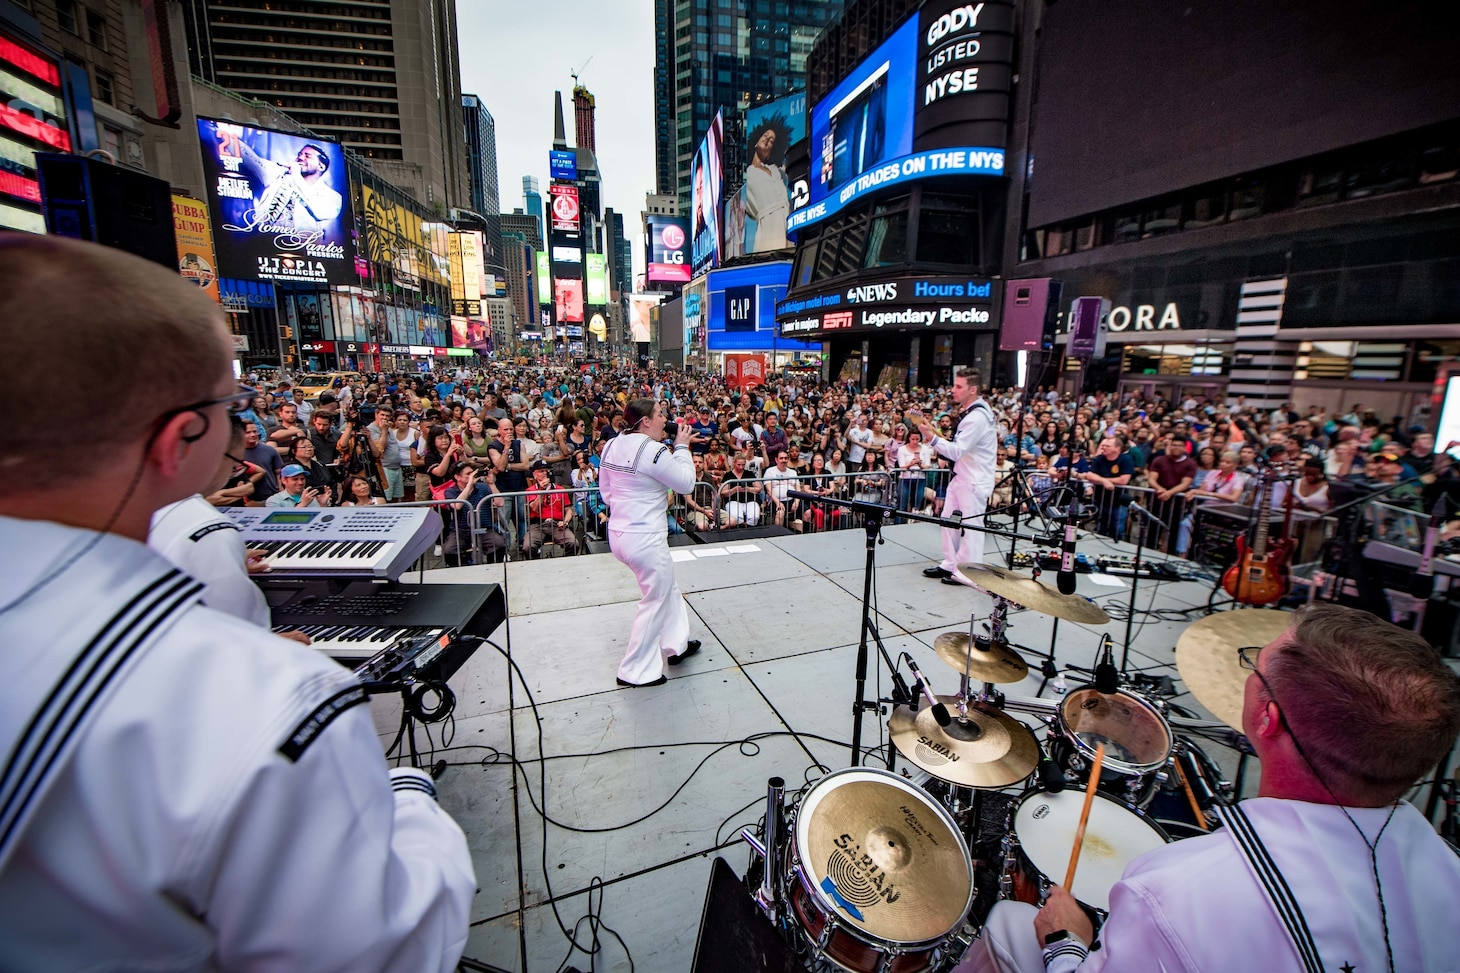 Navy Band Northeast's Rhode Island Sound performs at Times Square during Fleet Week New York (FWNY) 2019.